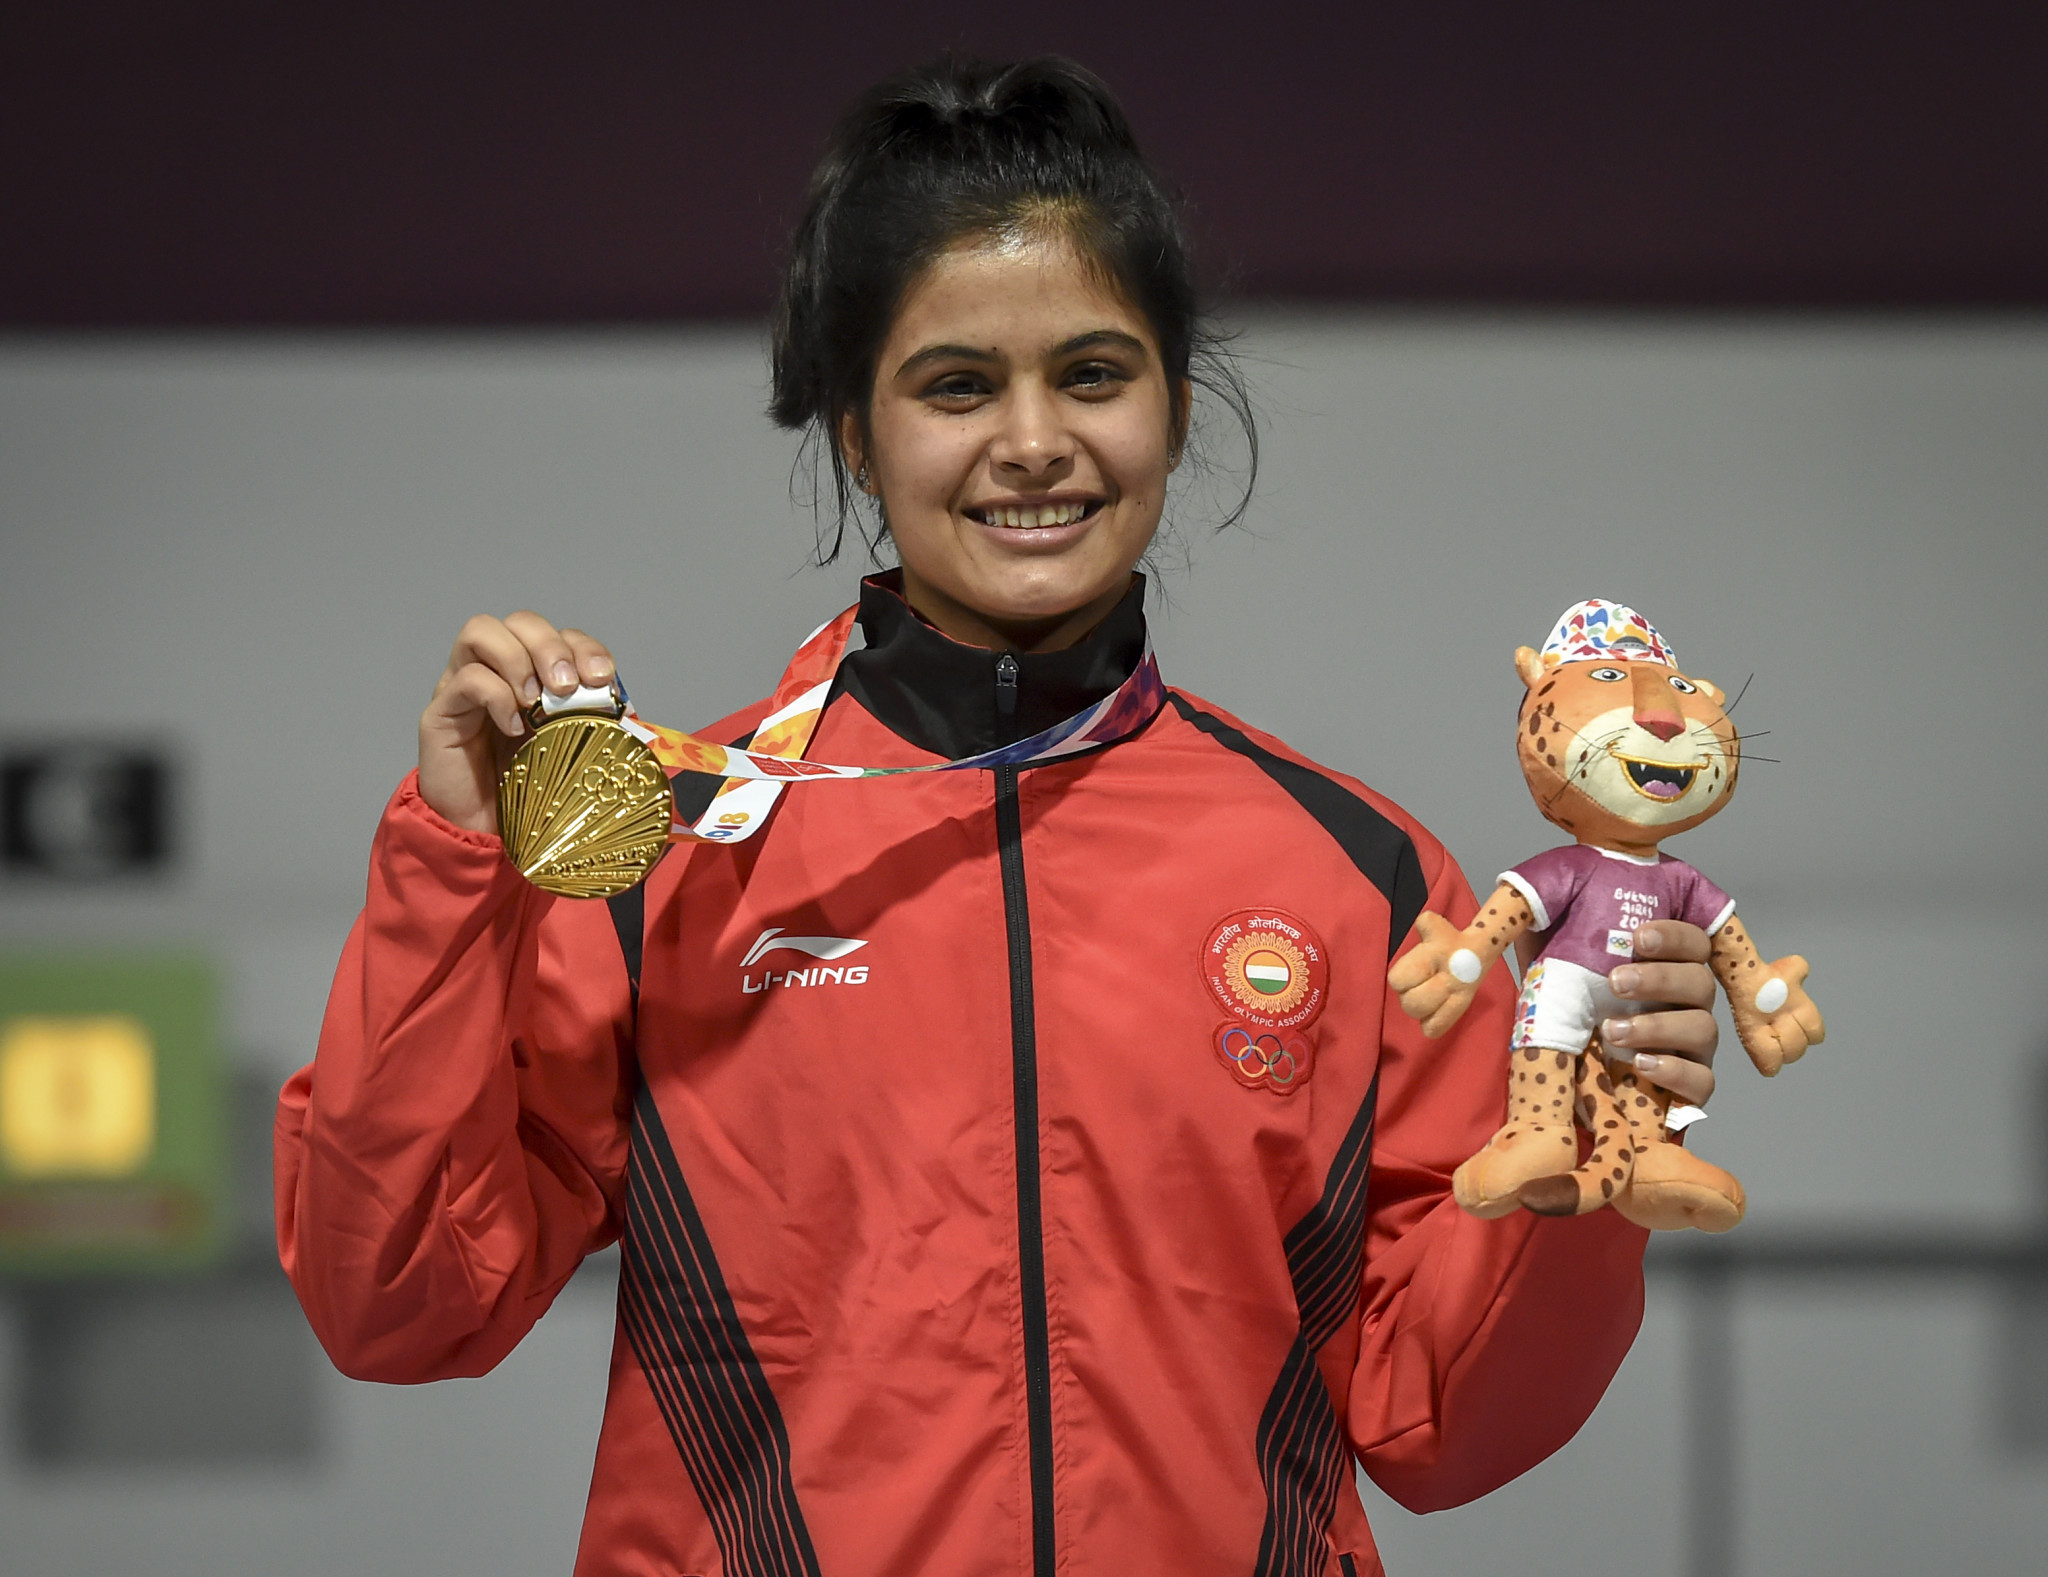 Manu Bhaker is set to receive her gold medal bonus from the Youth Olympics ©Getty Images